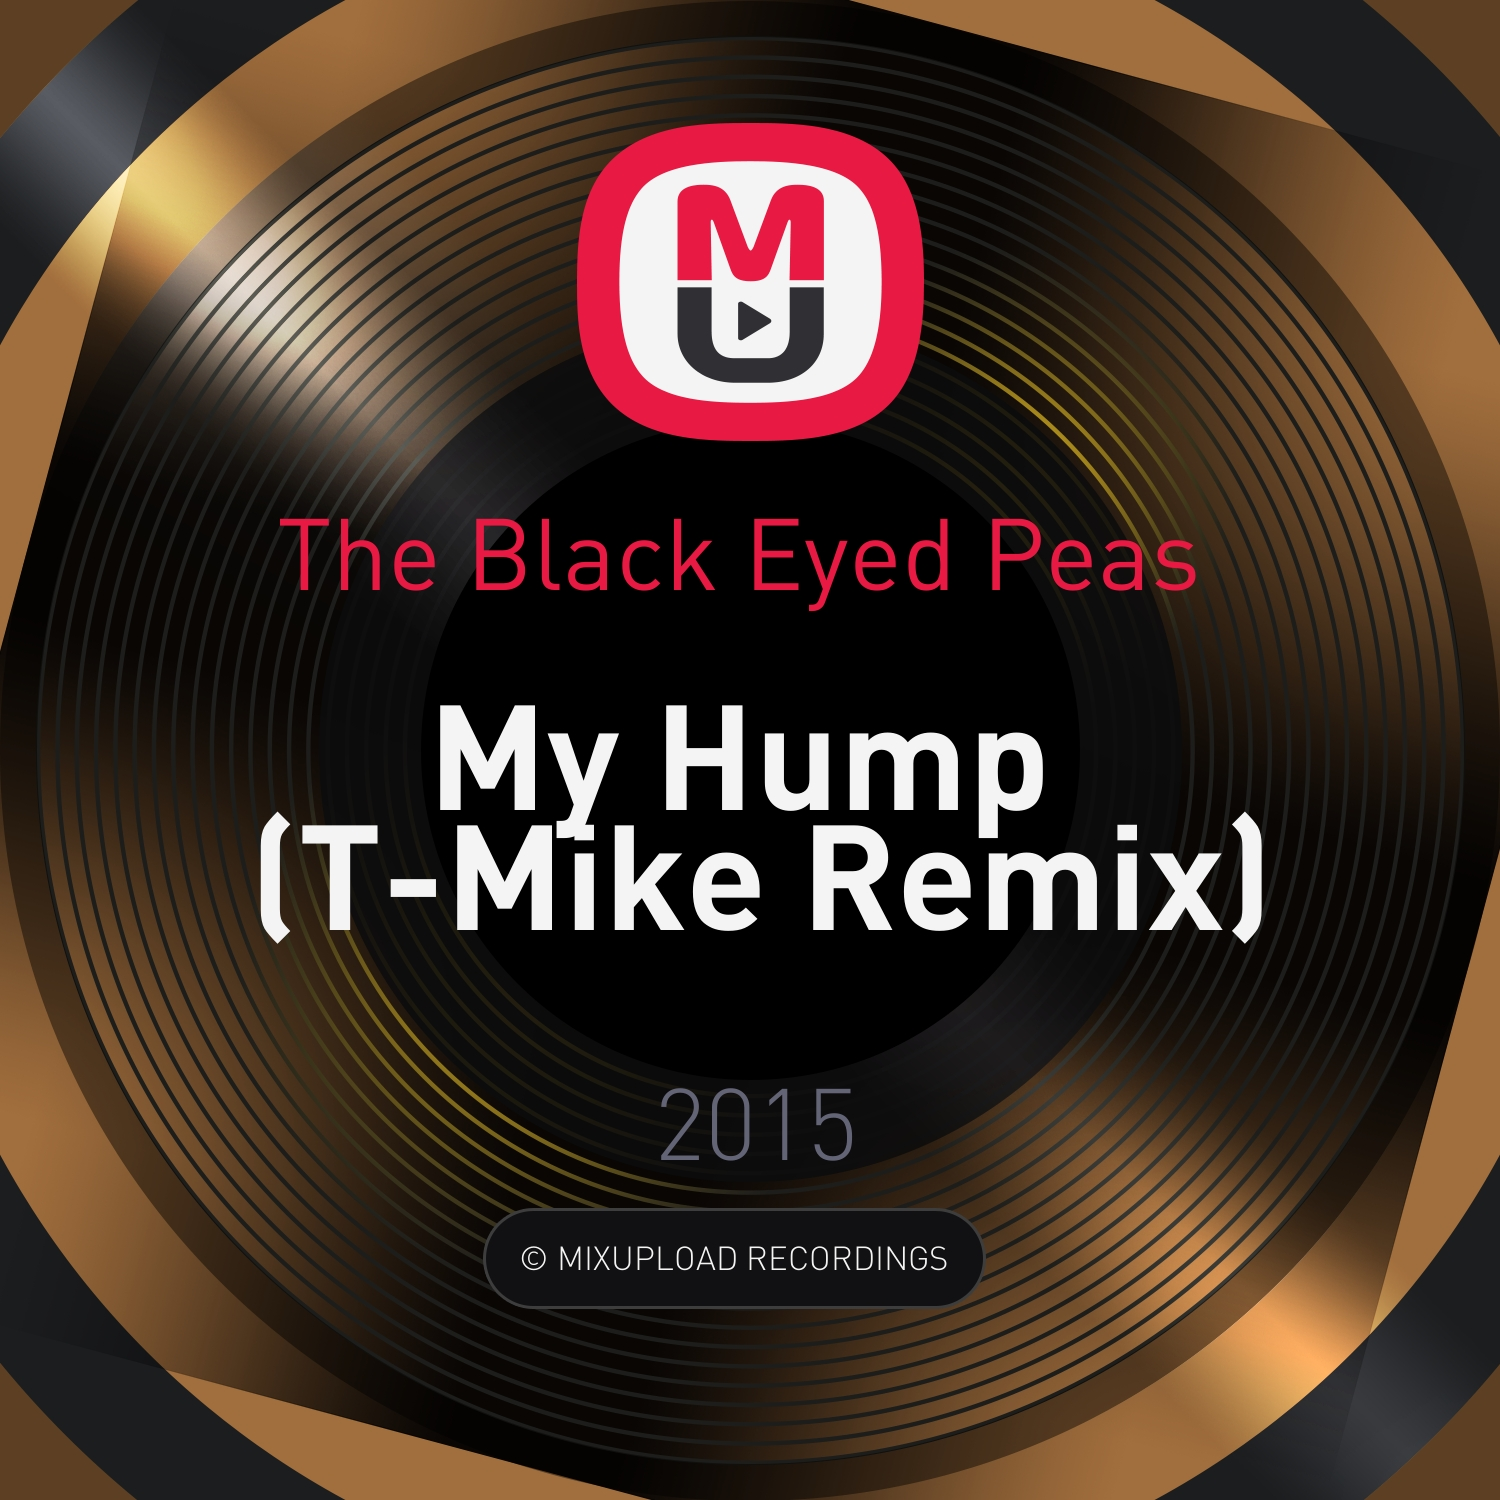 The Black Eyed Peas  - My Hump (T-Mike Remix)